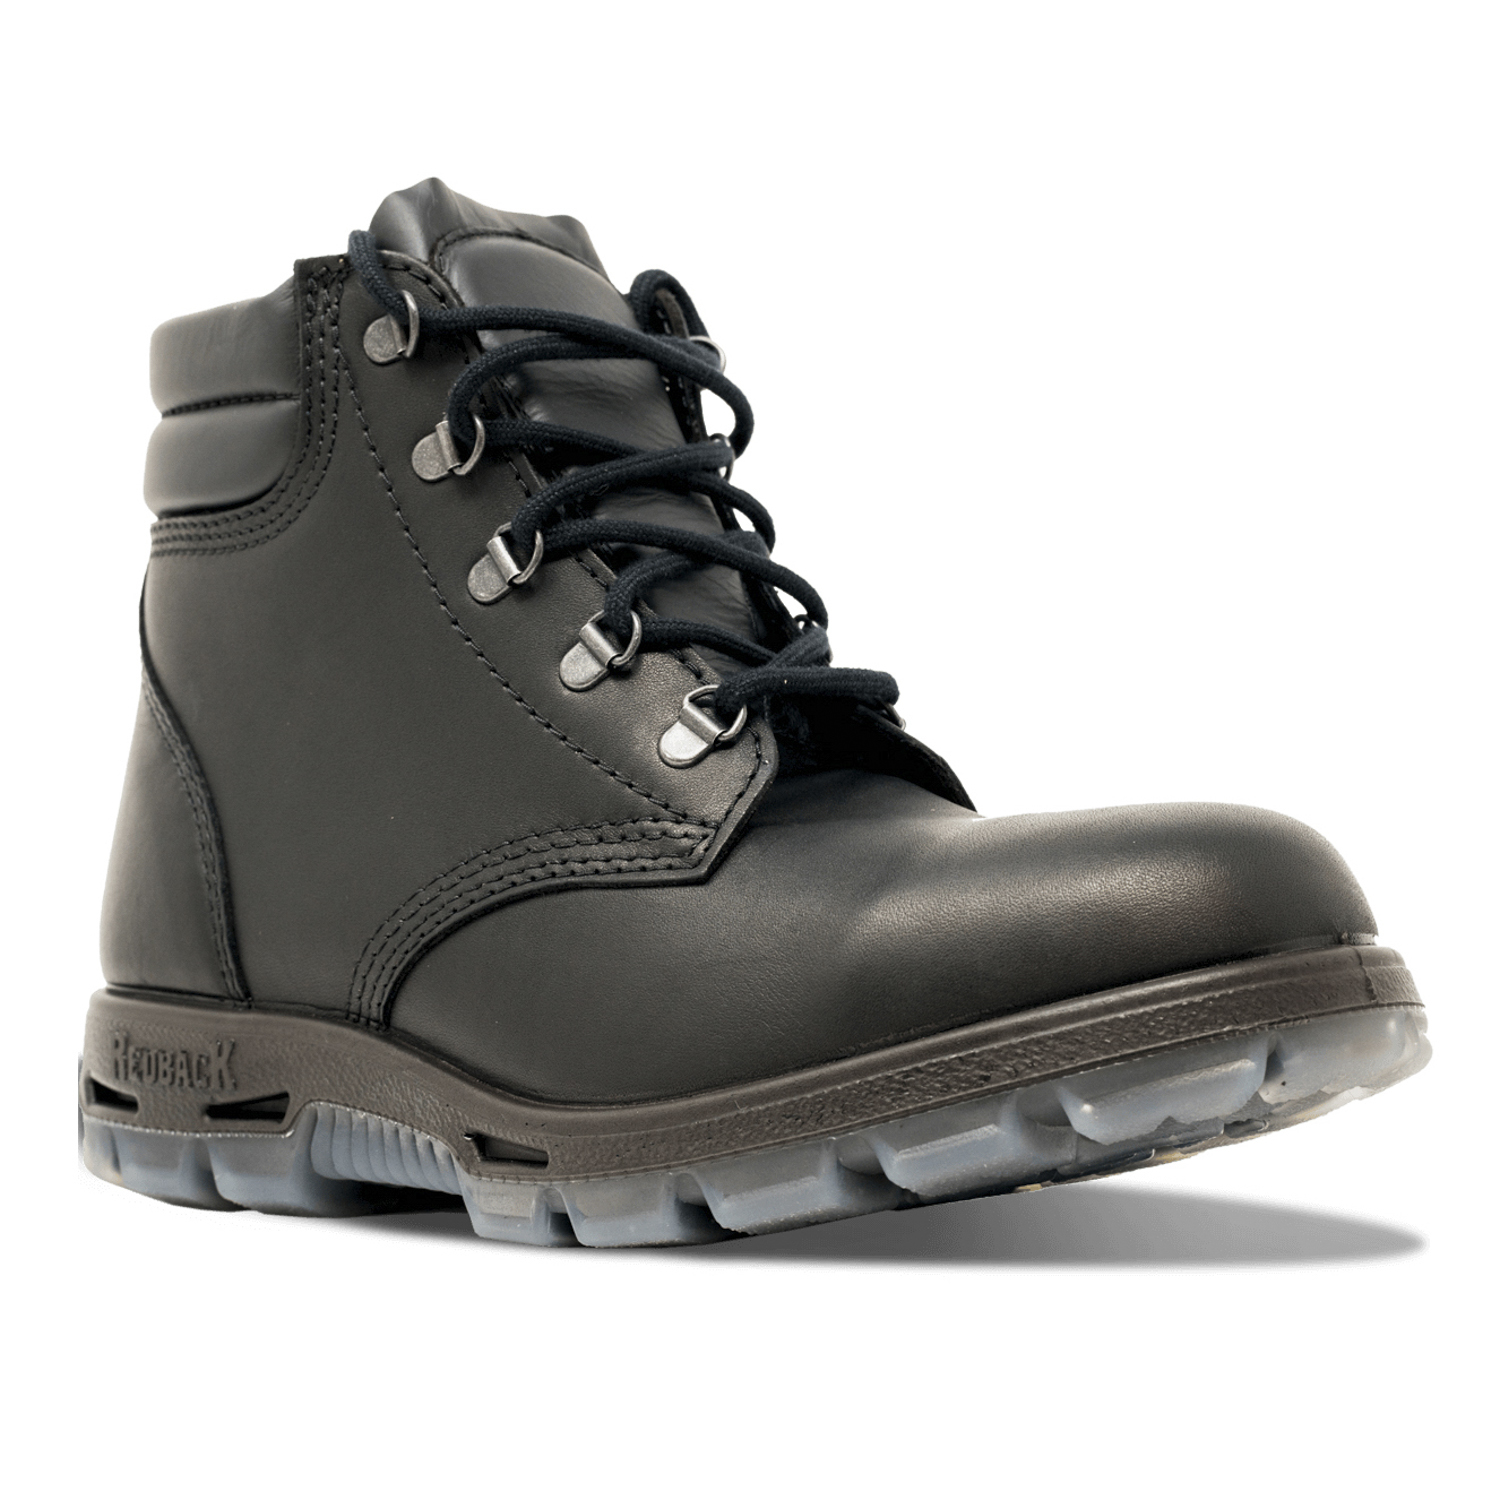 Redback Outback Steel Toe Boots.